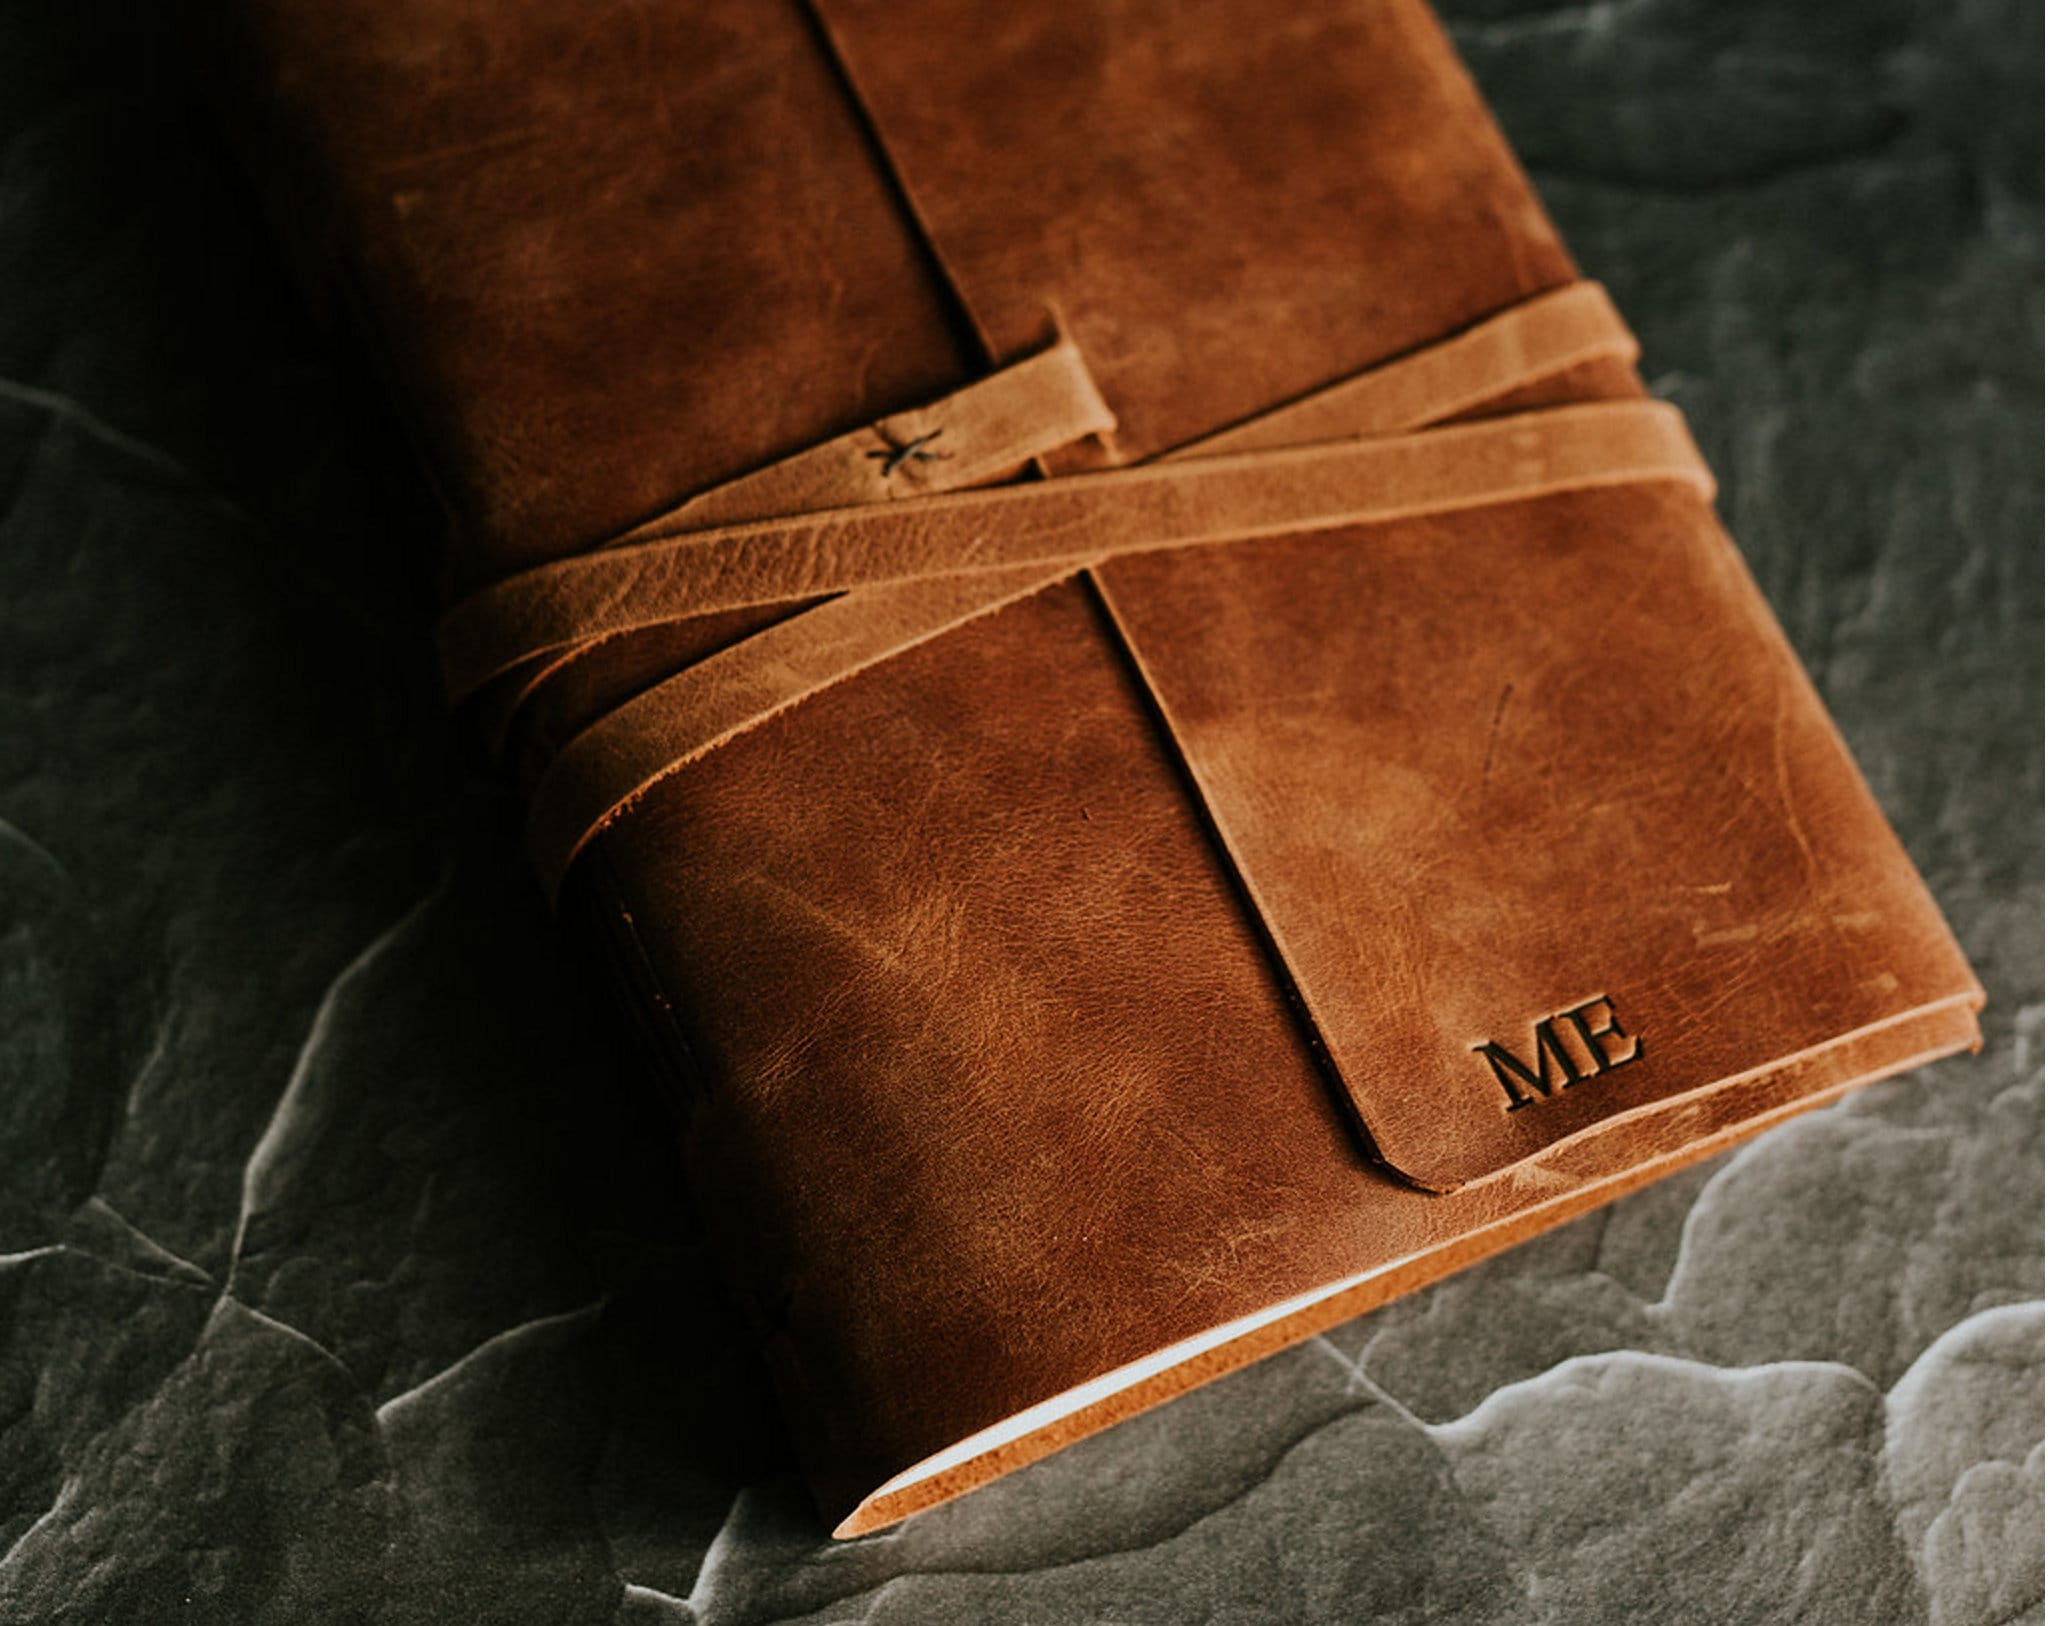 Personalized leather book Leather sketchbook Large blank image 4